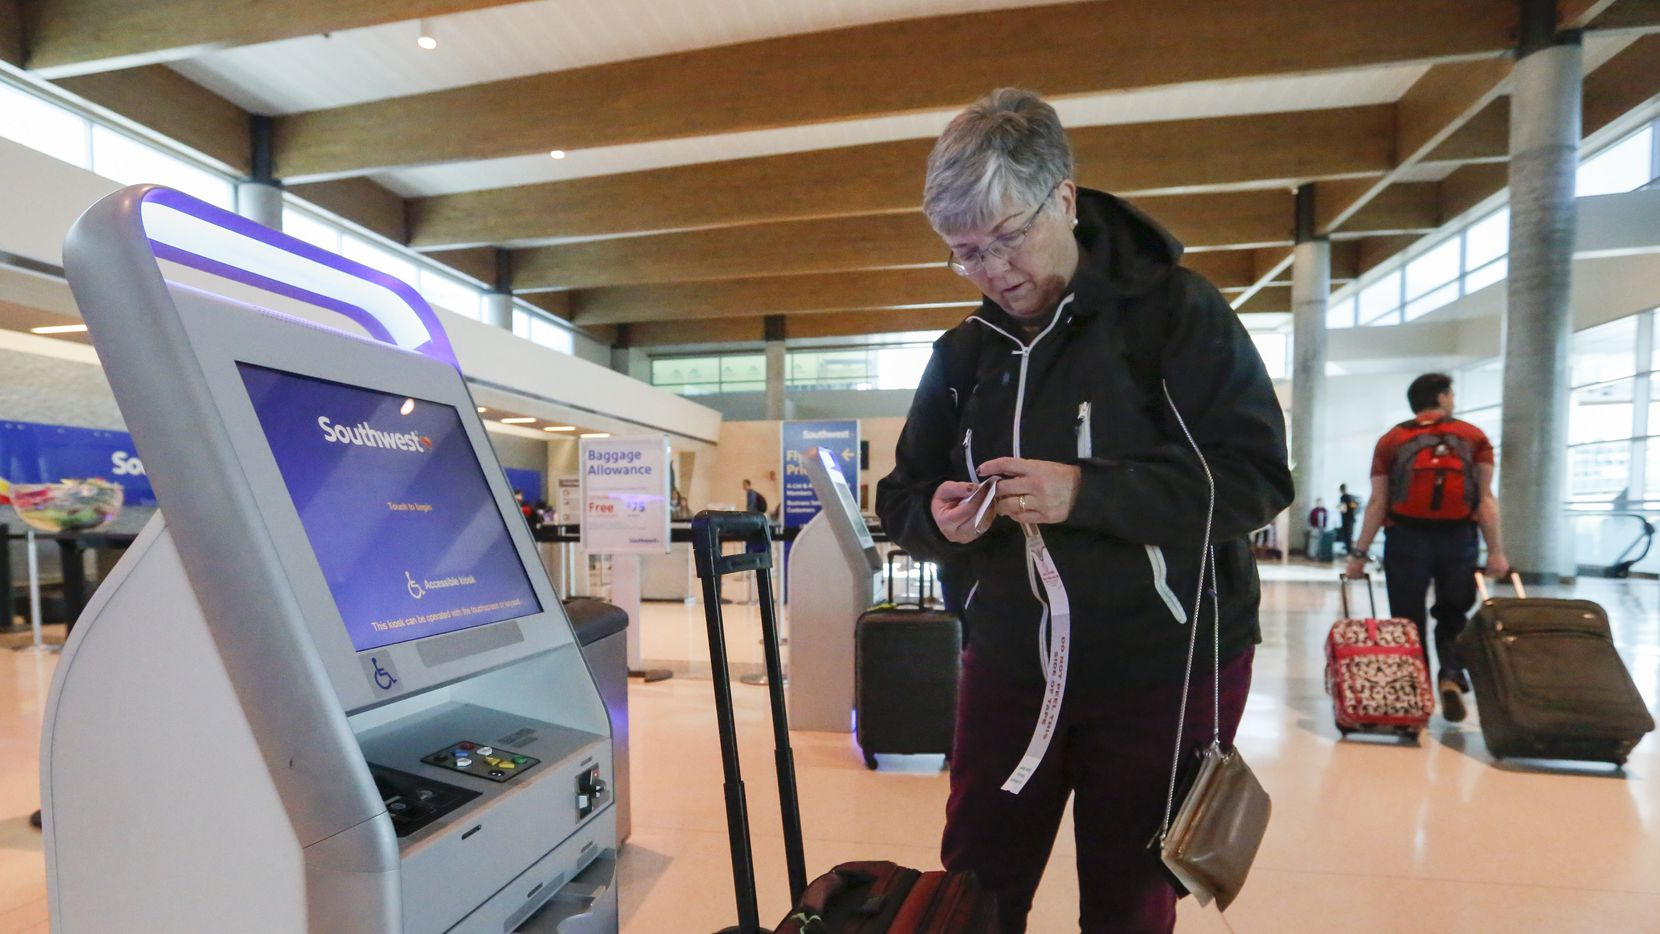 Ann Allen uses a Southwest Airlines kiosk to print some luggage tags at Dallas Love Field Wednesday, November 22, 2017. She was passing through Dallas from El Paso, Texas. (Ron Baselice/The Dallas Morning News)